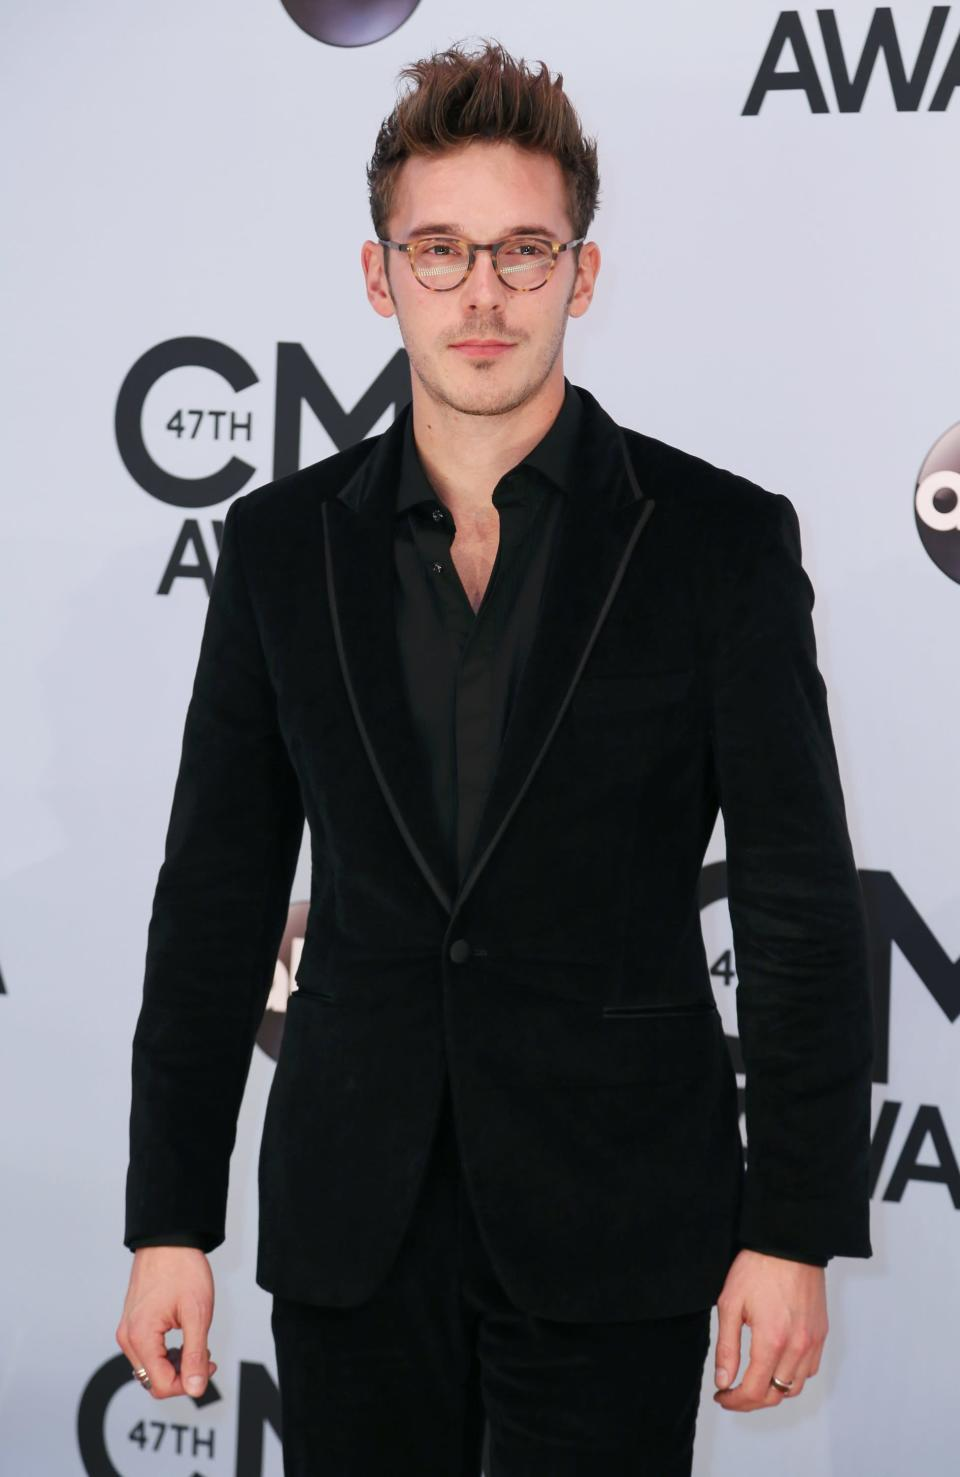 Actor Sam Palladio arrives at the 47th Country Music Association Awards in Nashville, Tennessee November 6, 2013. REUTERS/Eric Henderson (UNITED STATES - Tags: ENTERTAINMENT)